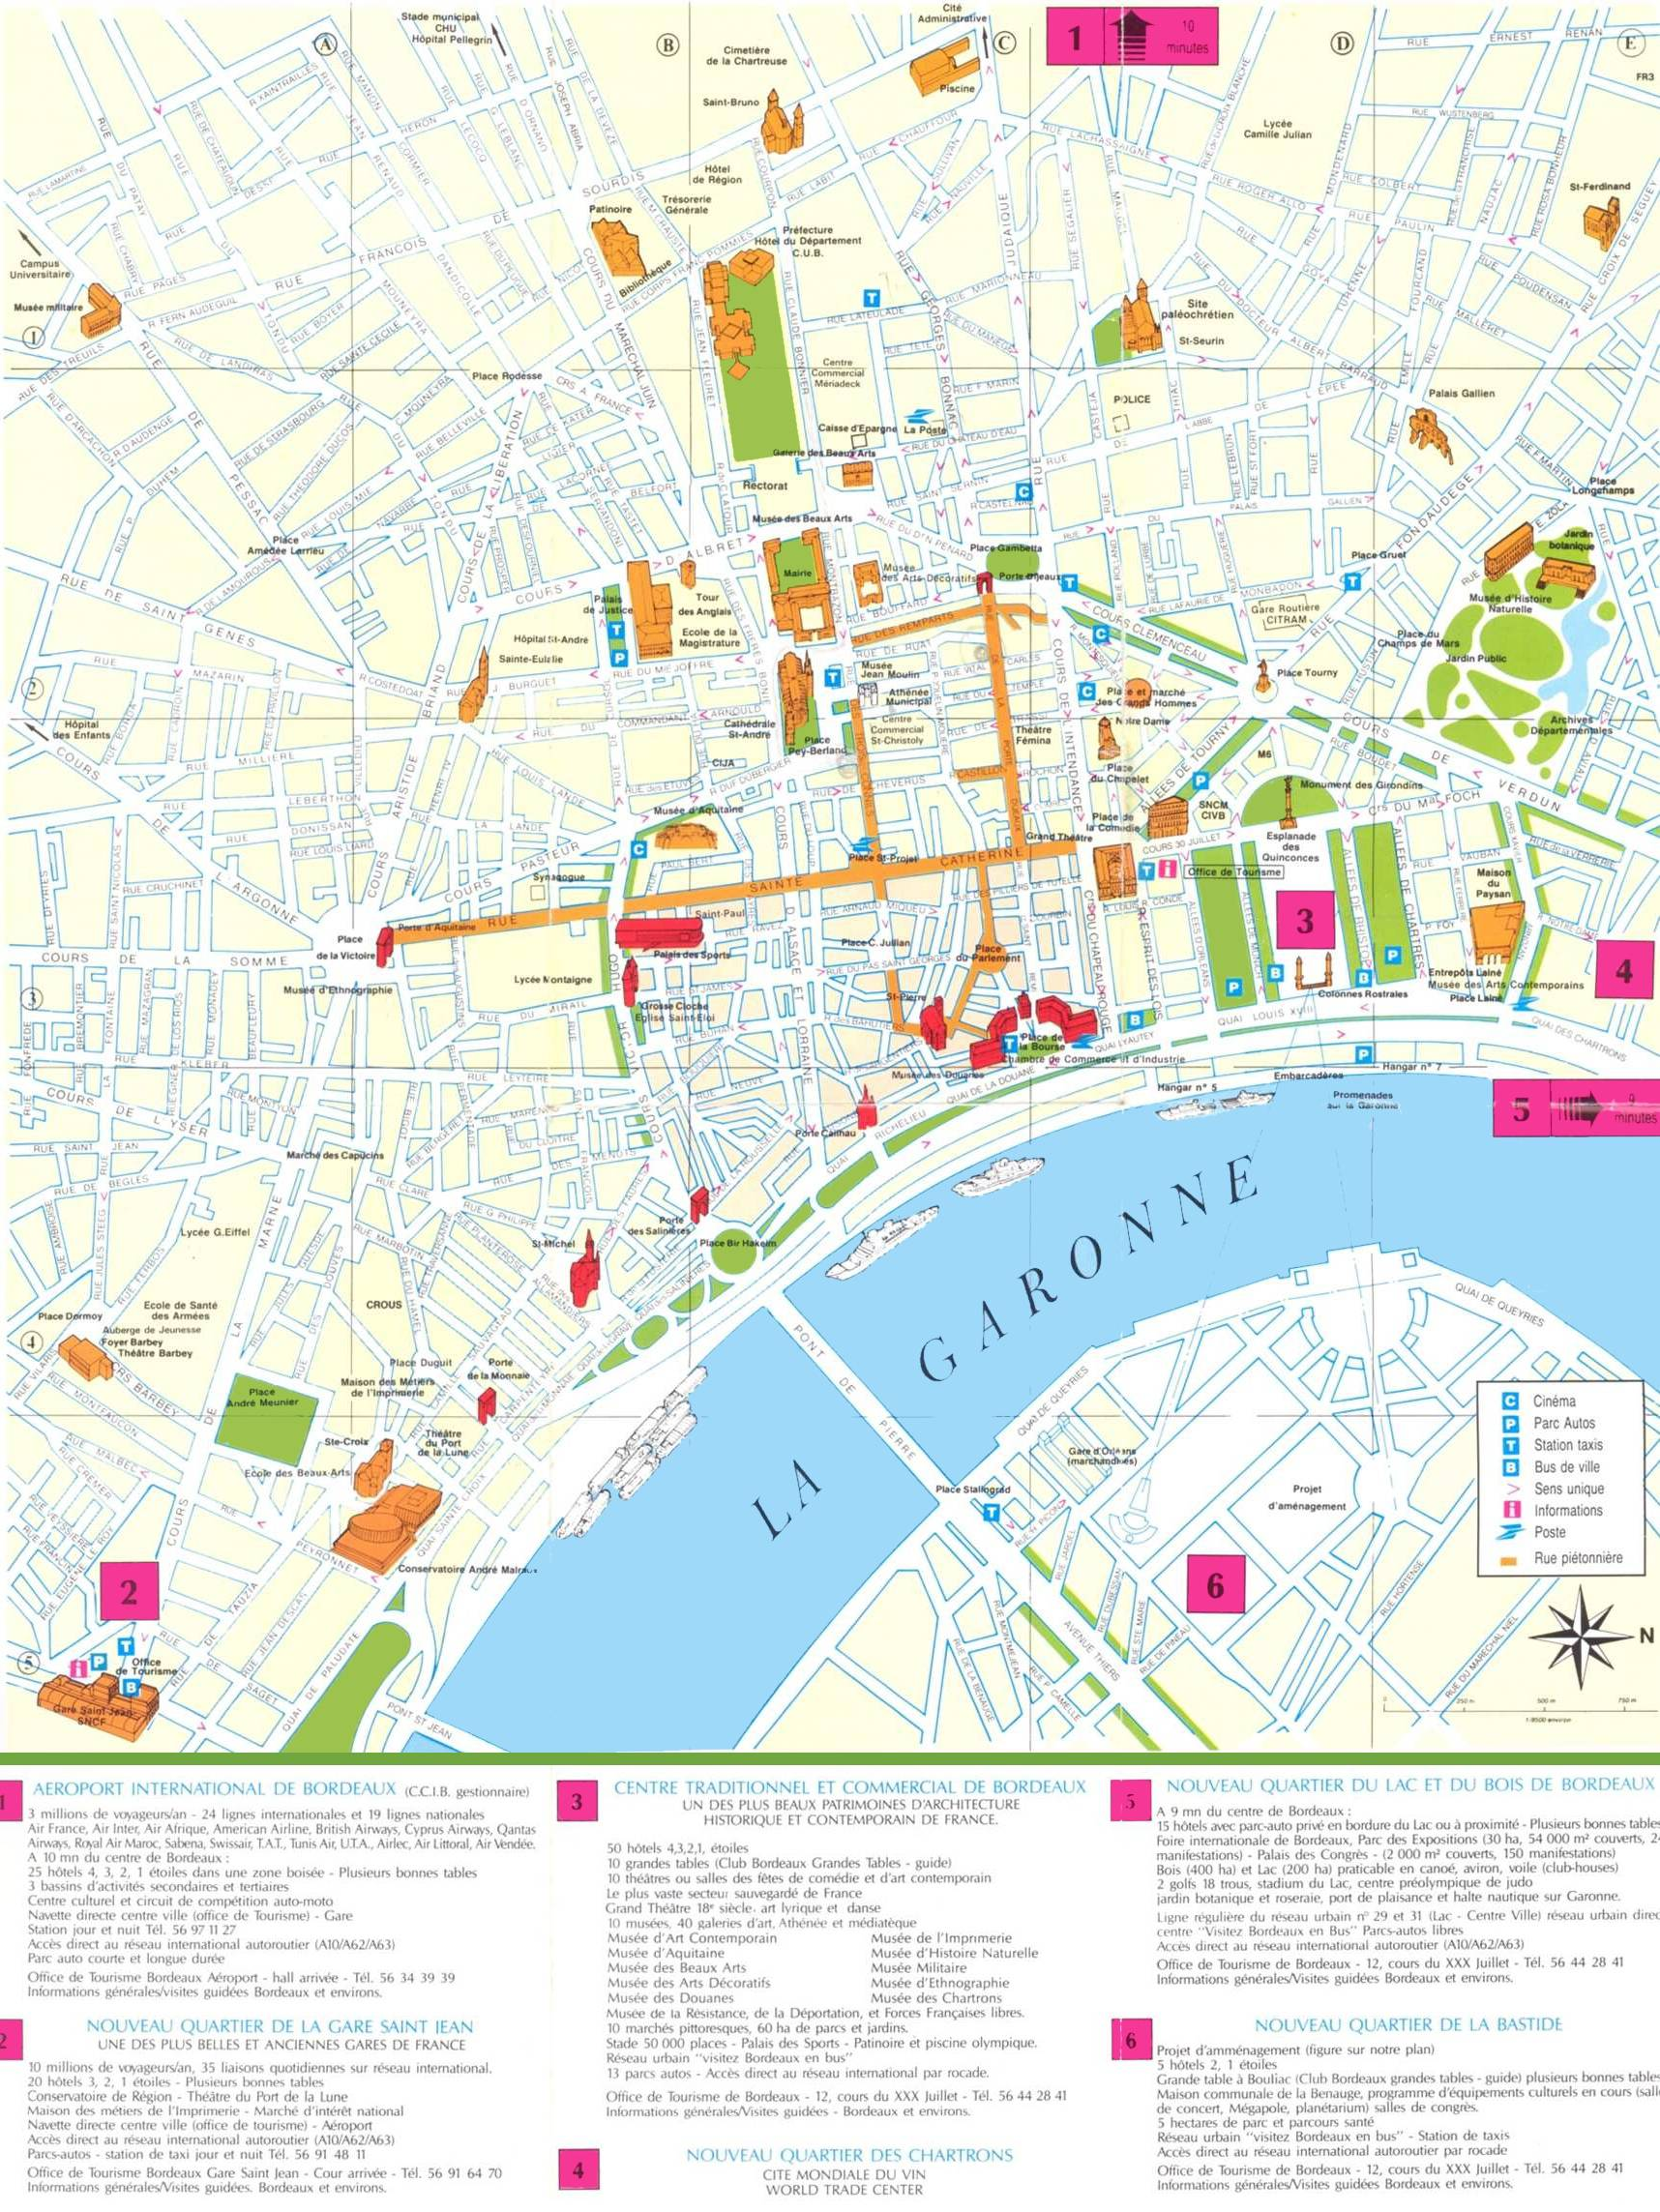 Carte de Bordeaux pour le tourisme